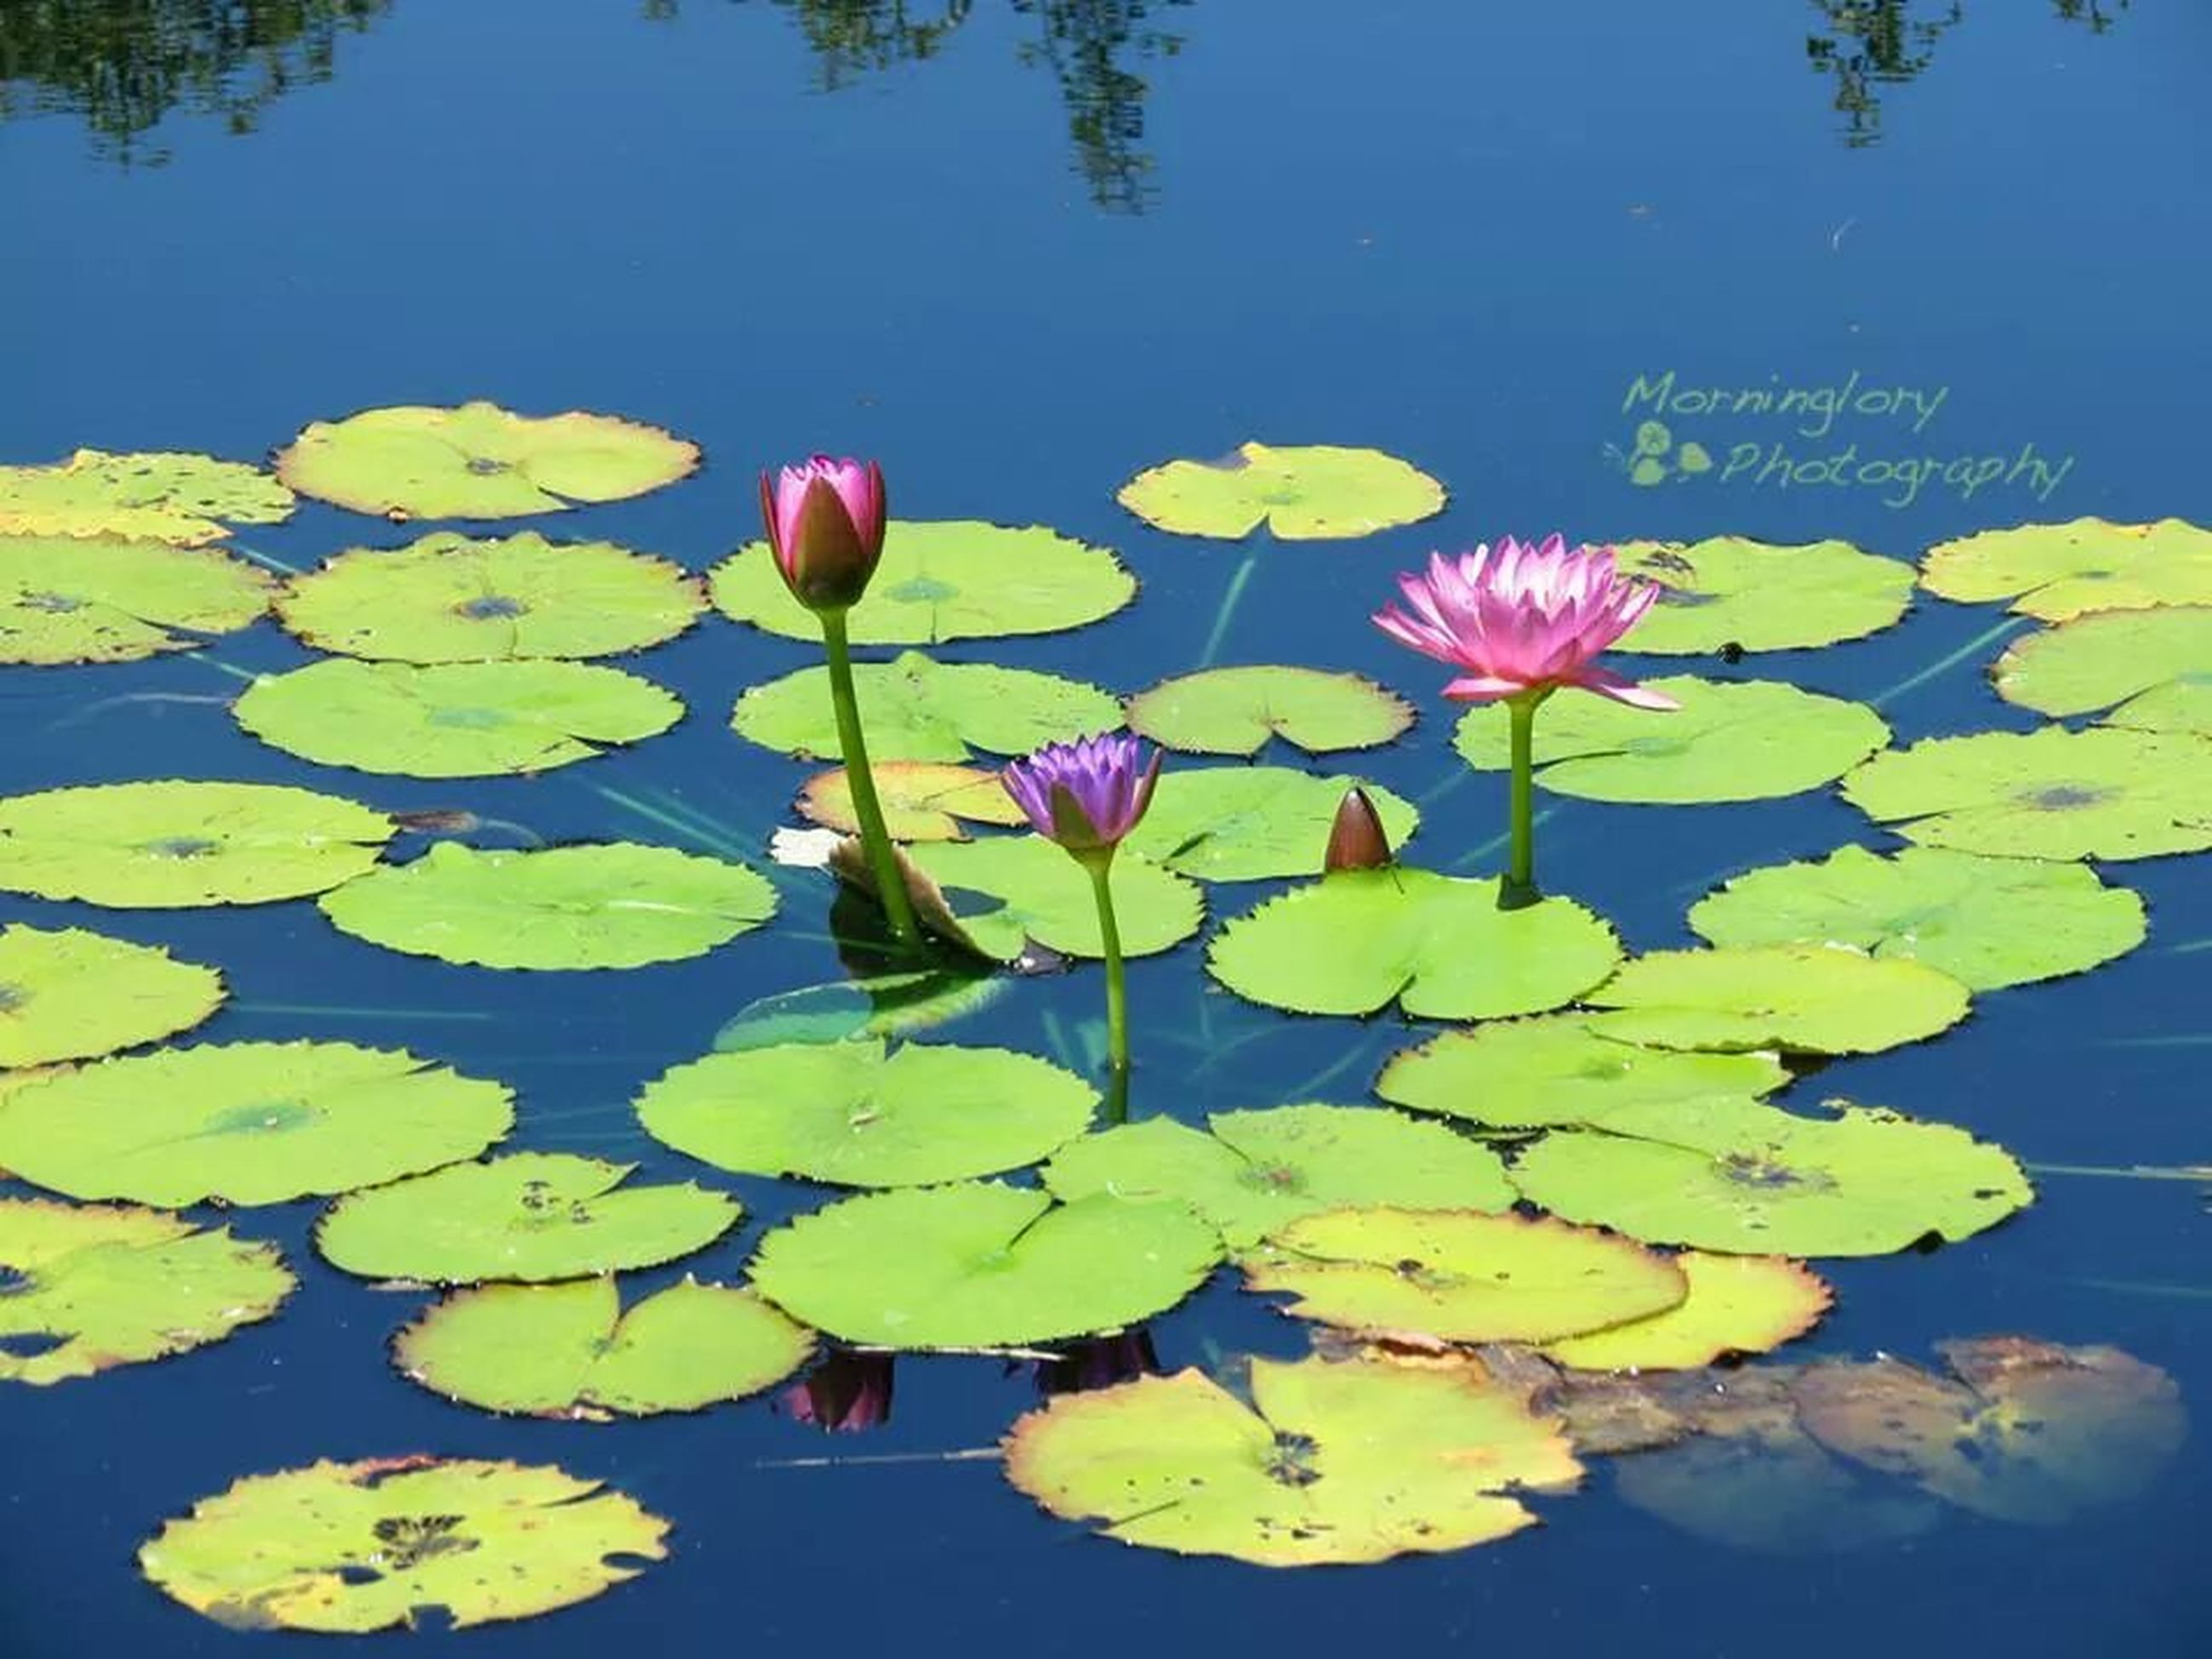 leaf, flower, water, water lily, growth, floating on water, freshness, beauty in nature, pond, fragility, petal, nature, plant, lake, reflection, green color, lotus water lily, flower head, blue, yellow